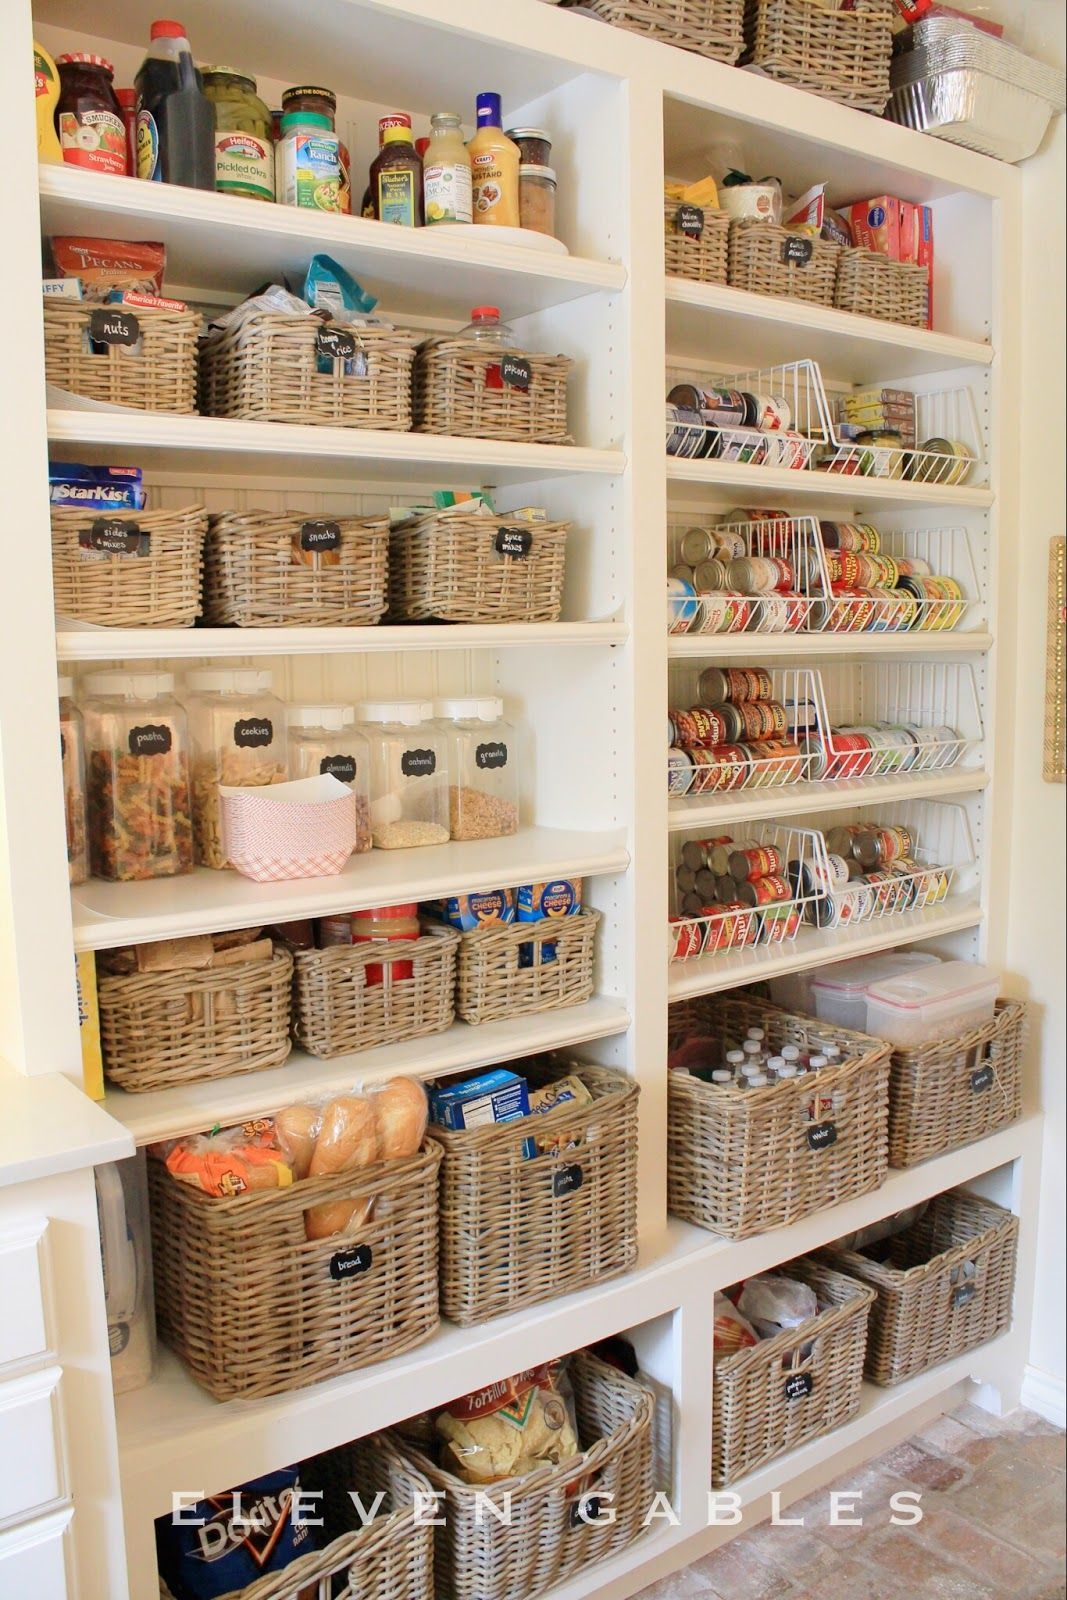 These supertidy pantries are everything you want in kitchen storage